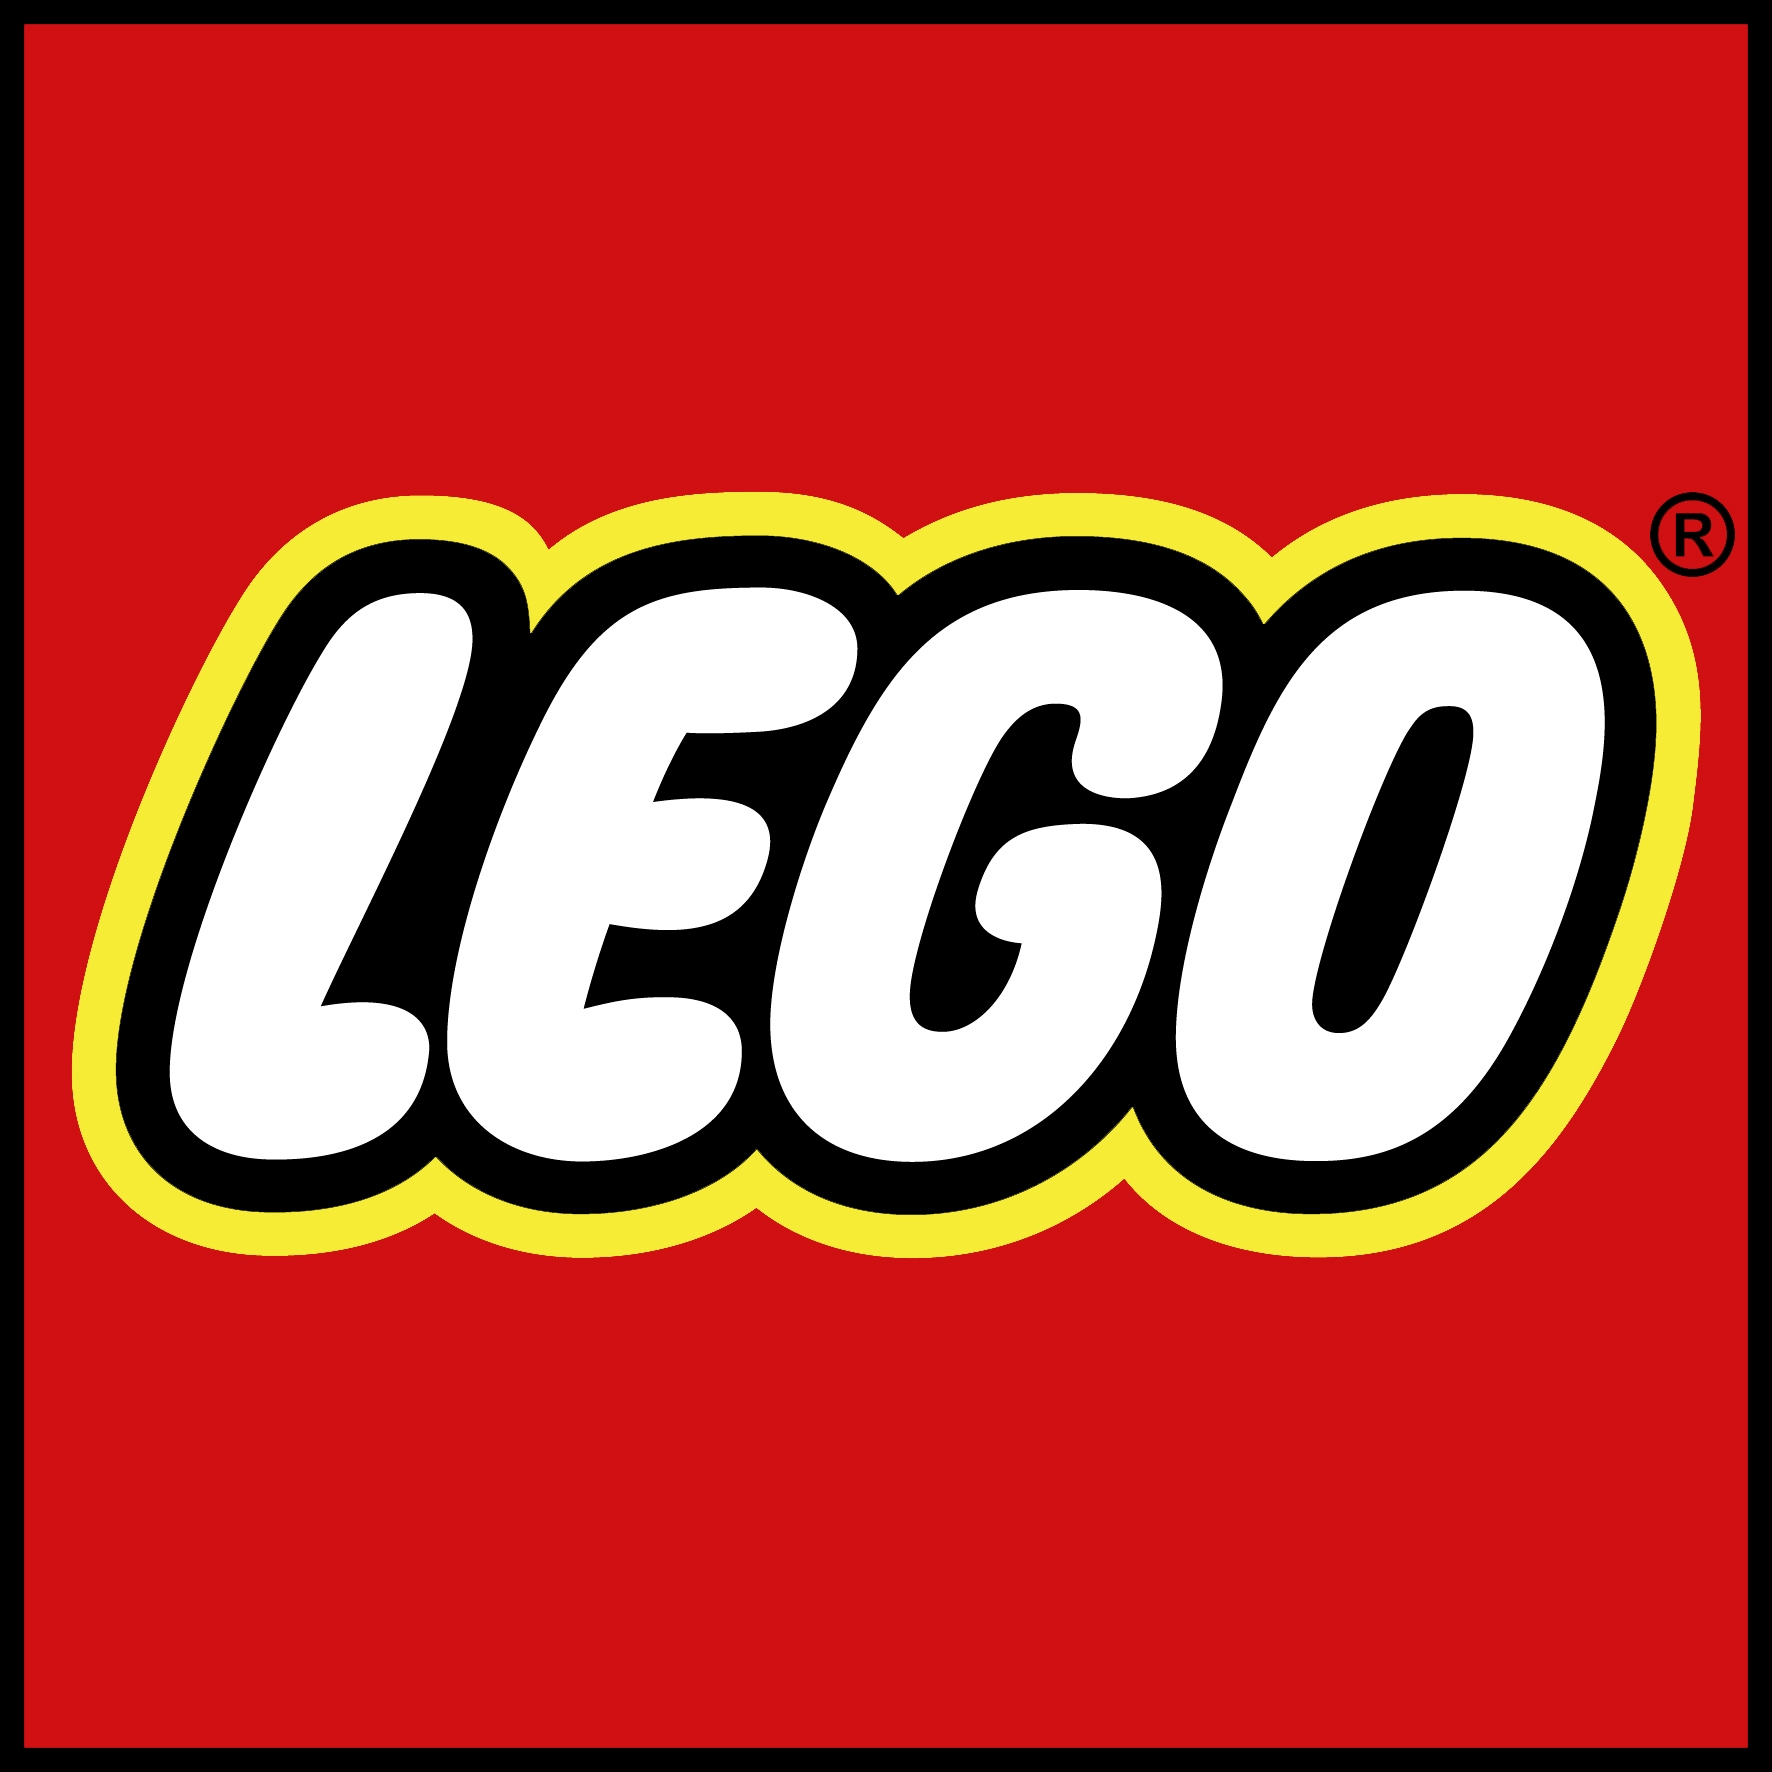 LEGO logo | Brickipedia | FANDOM powered by Wikia